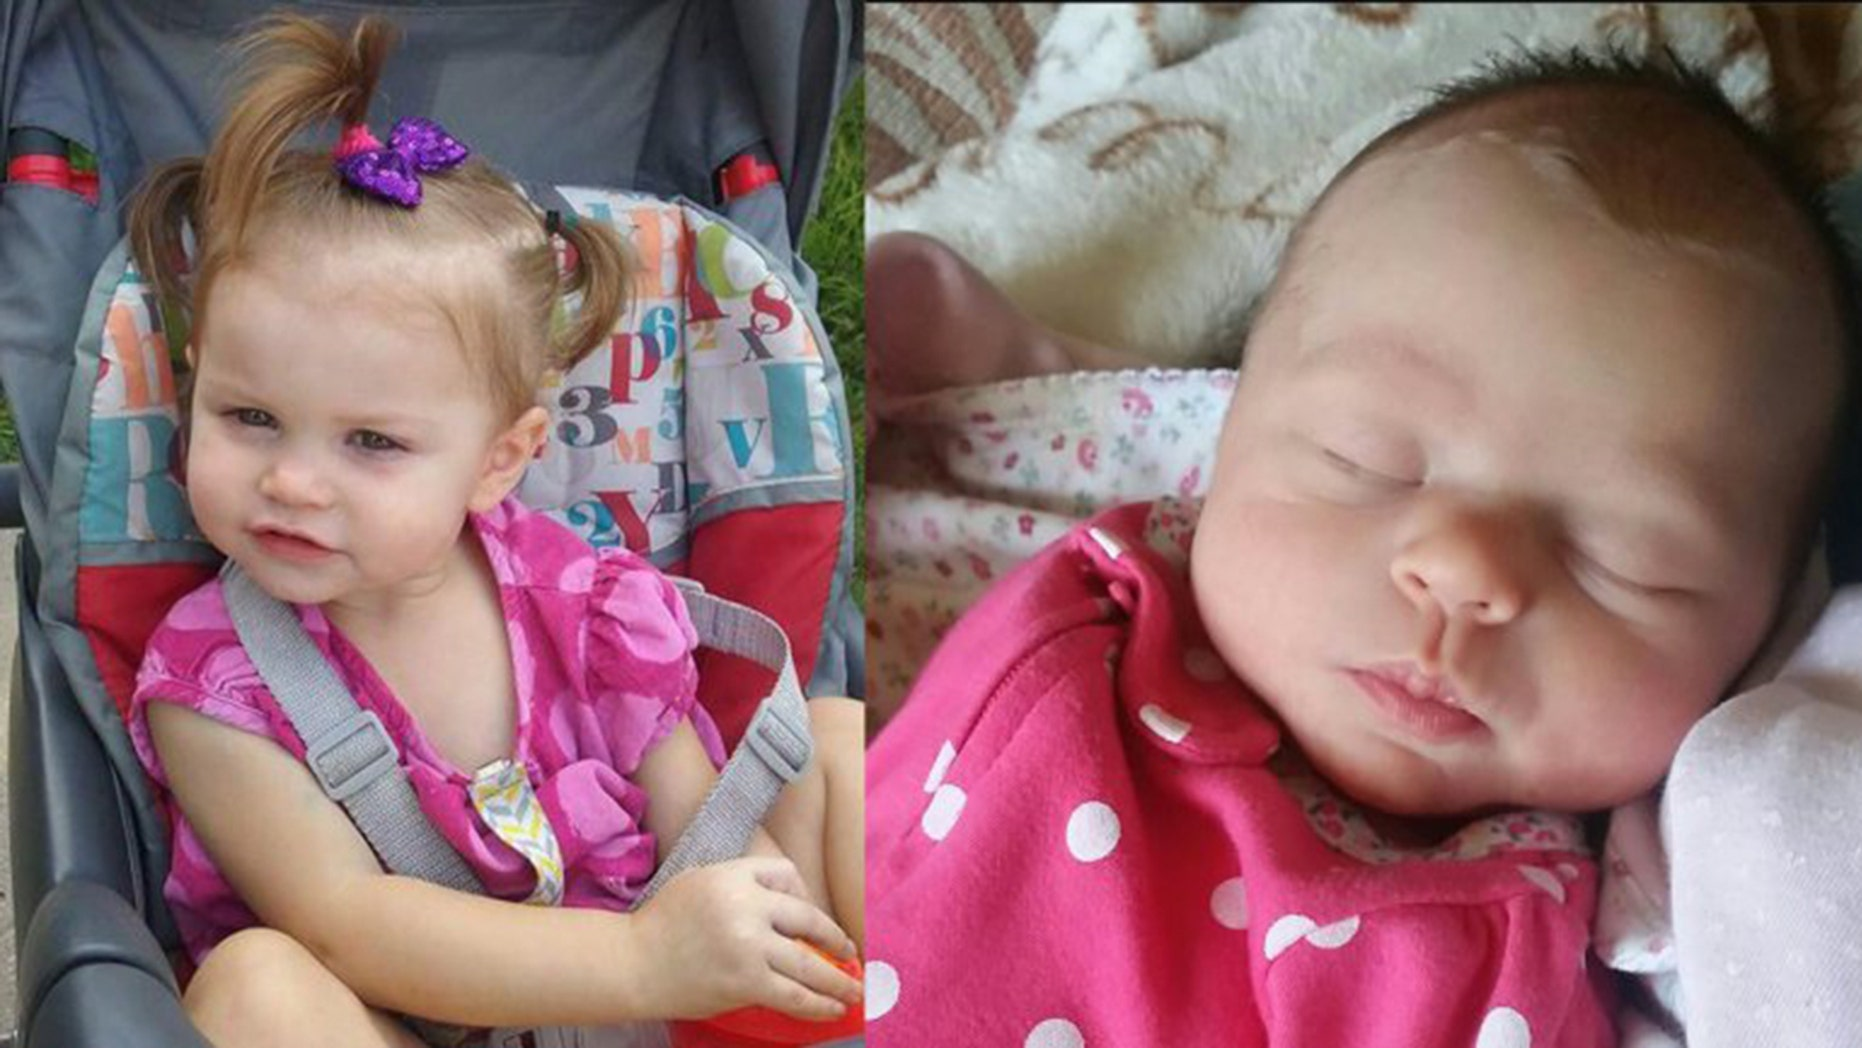 Ireland Ribando, 2, left, and Goodknight Ribando, 7 weeks old, were found dead on Independence Day.